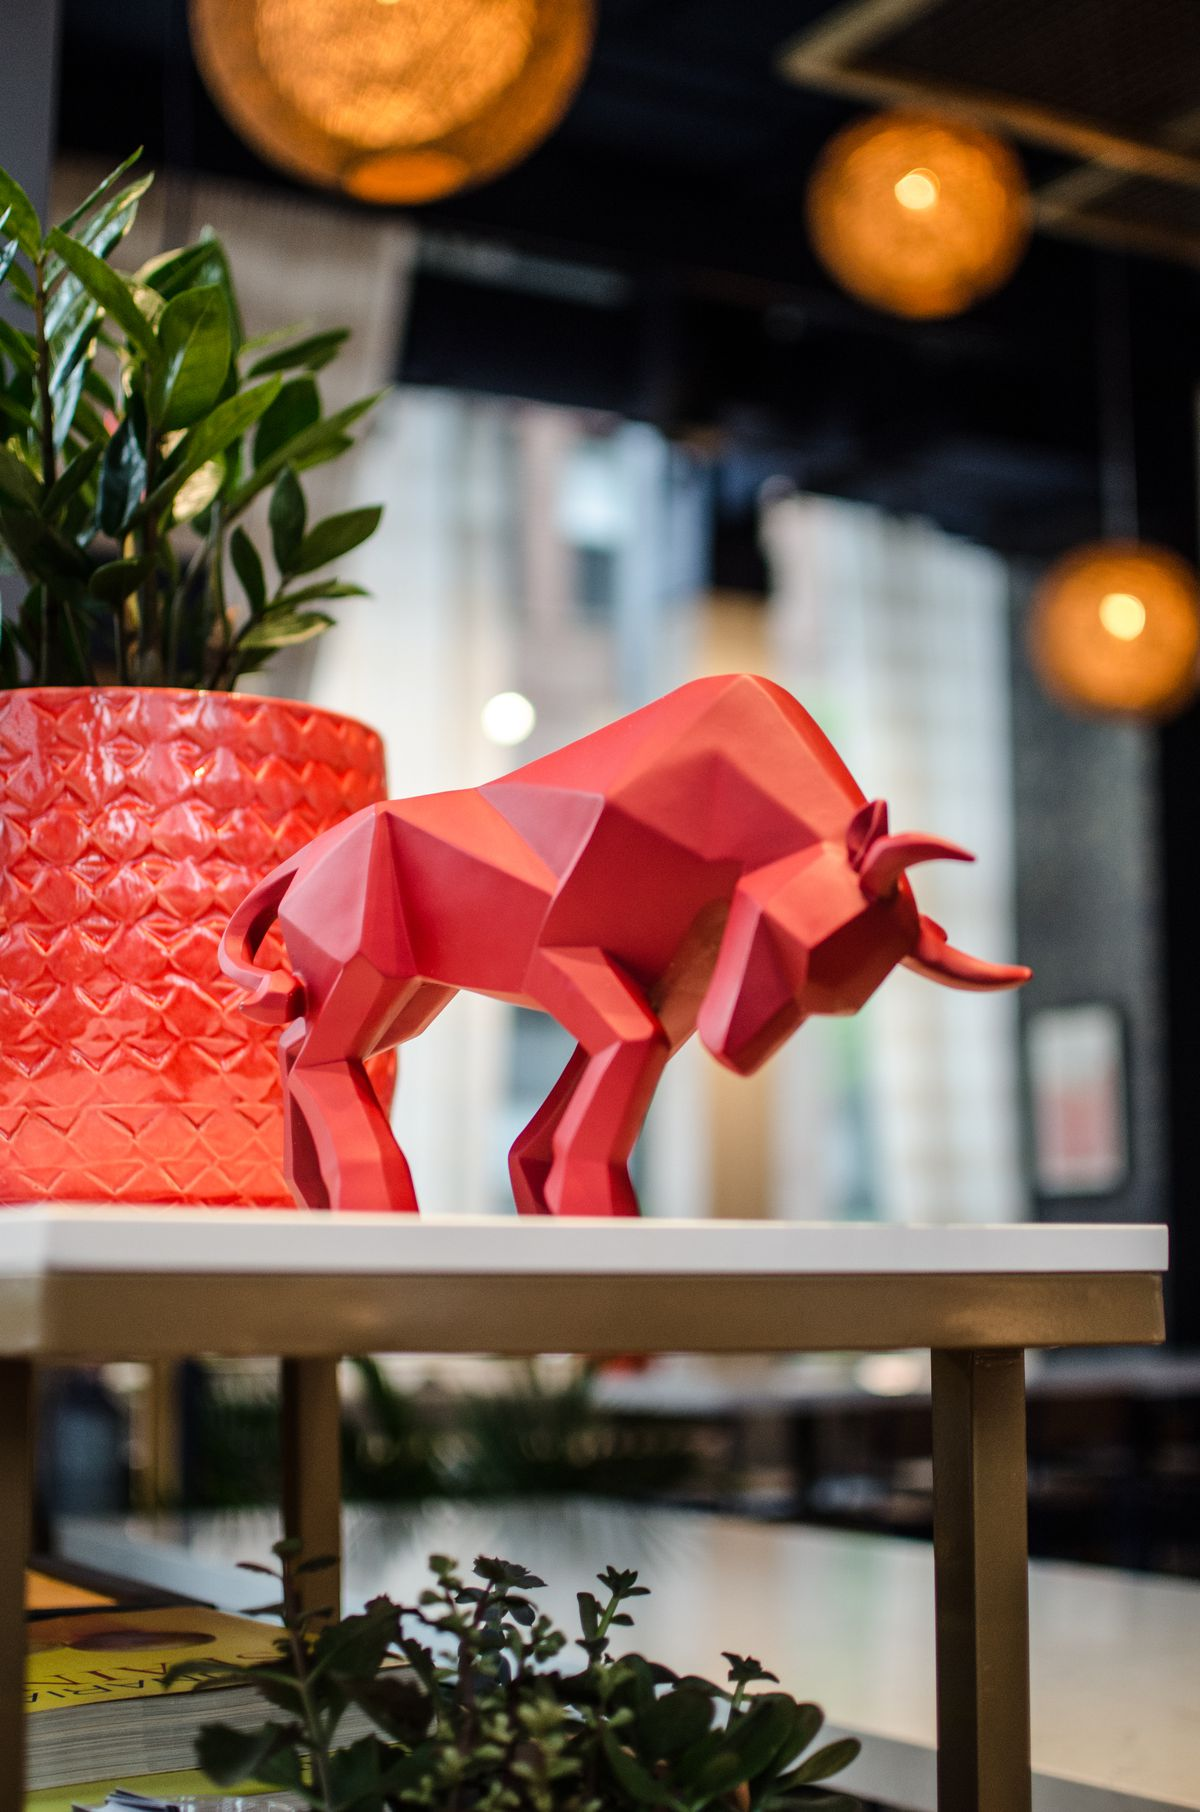 A bright red bull figurine sits next to a red flower pot holding a succulent on a small shelf. Another plant and books are visible in the corner, and the background shows a high-ceilinged restaurant with large spherical light fixtures.